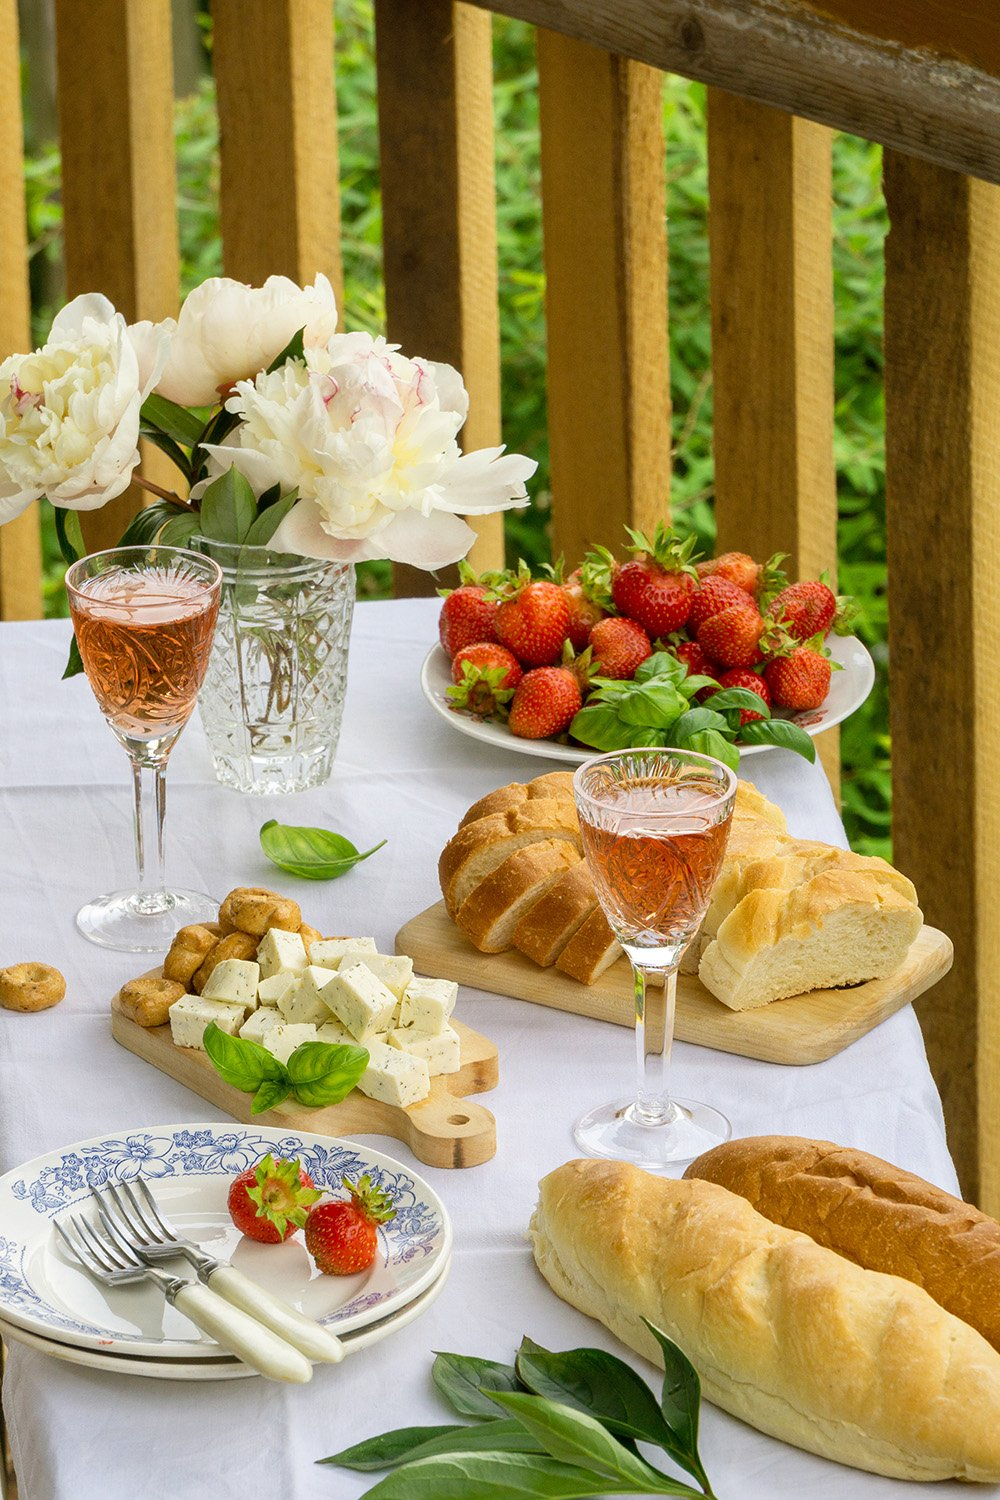 Summer picnic table bundle - 10 photos example image 3